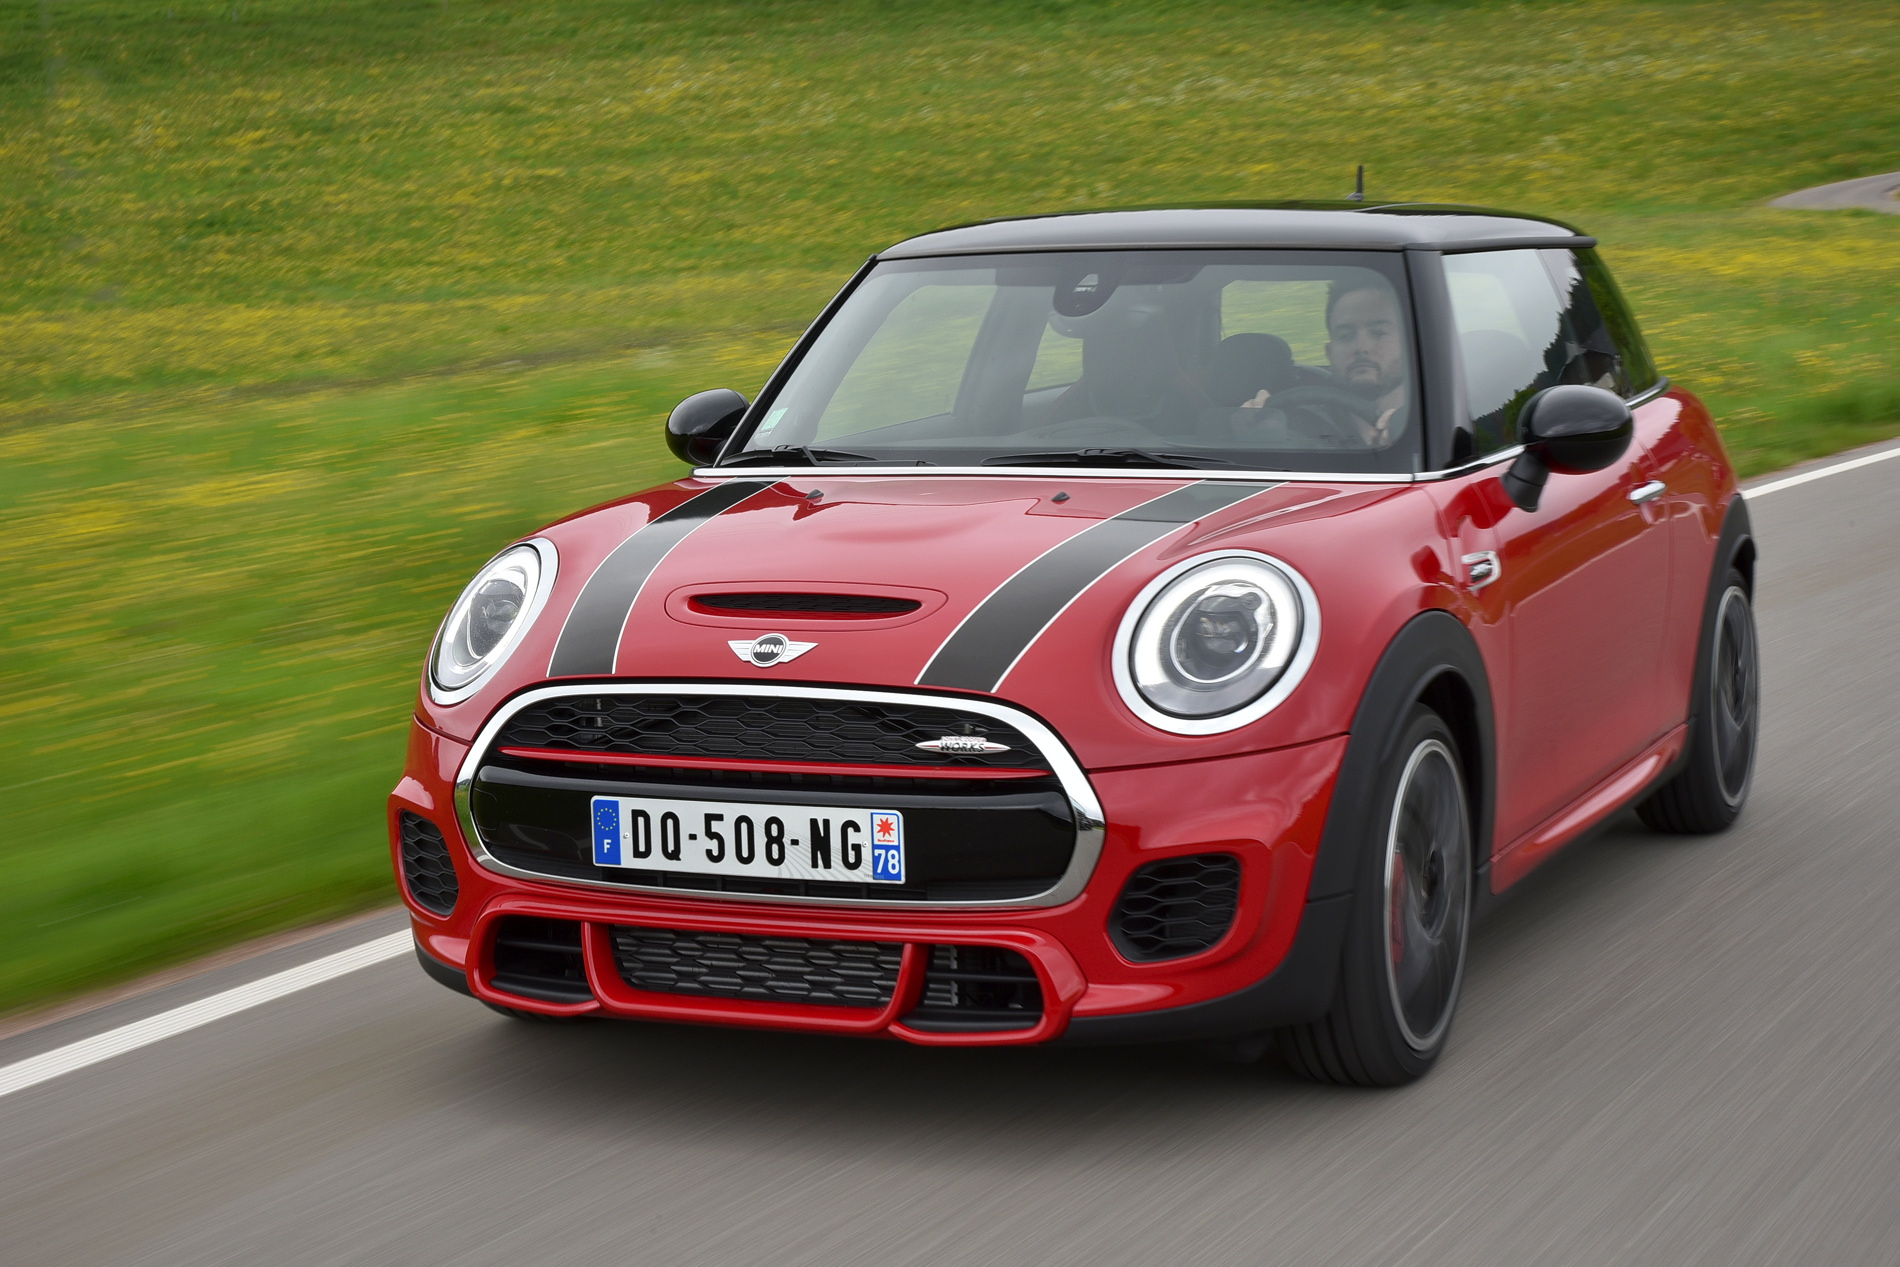 Bmw I Series >> Could the MINI Cooper S be a cheap BMW alternative?